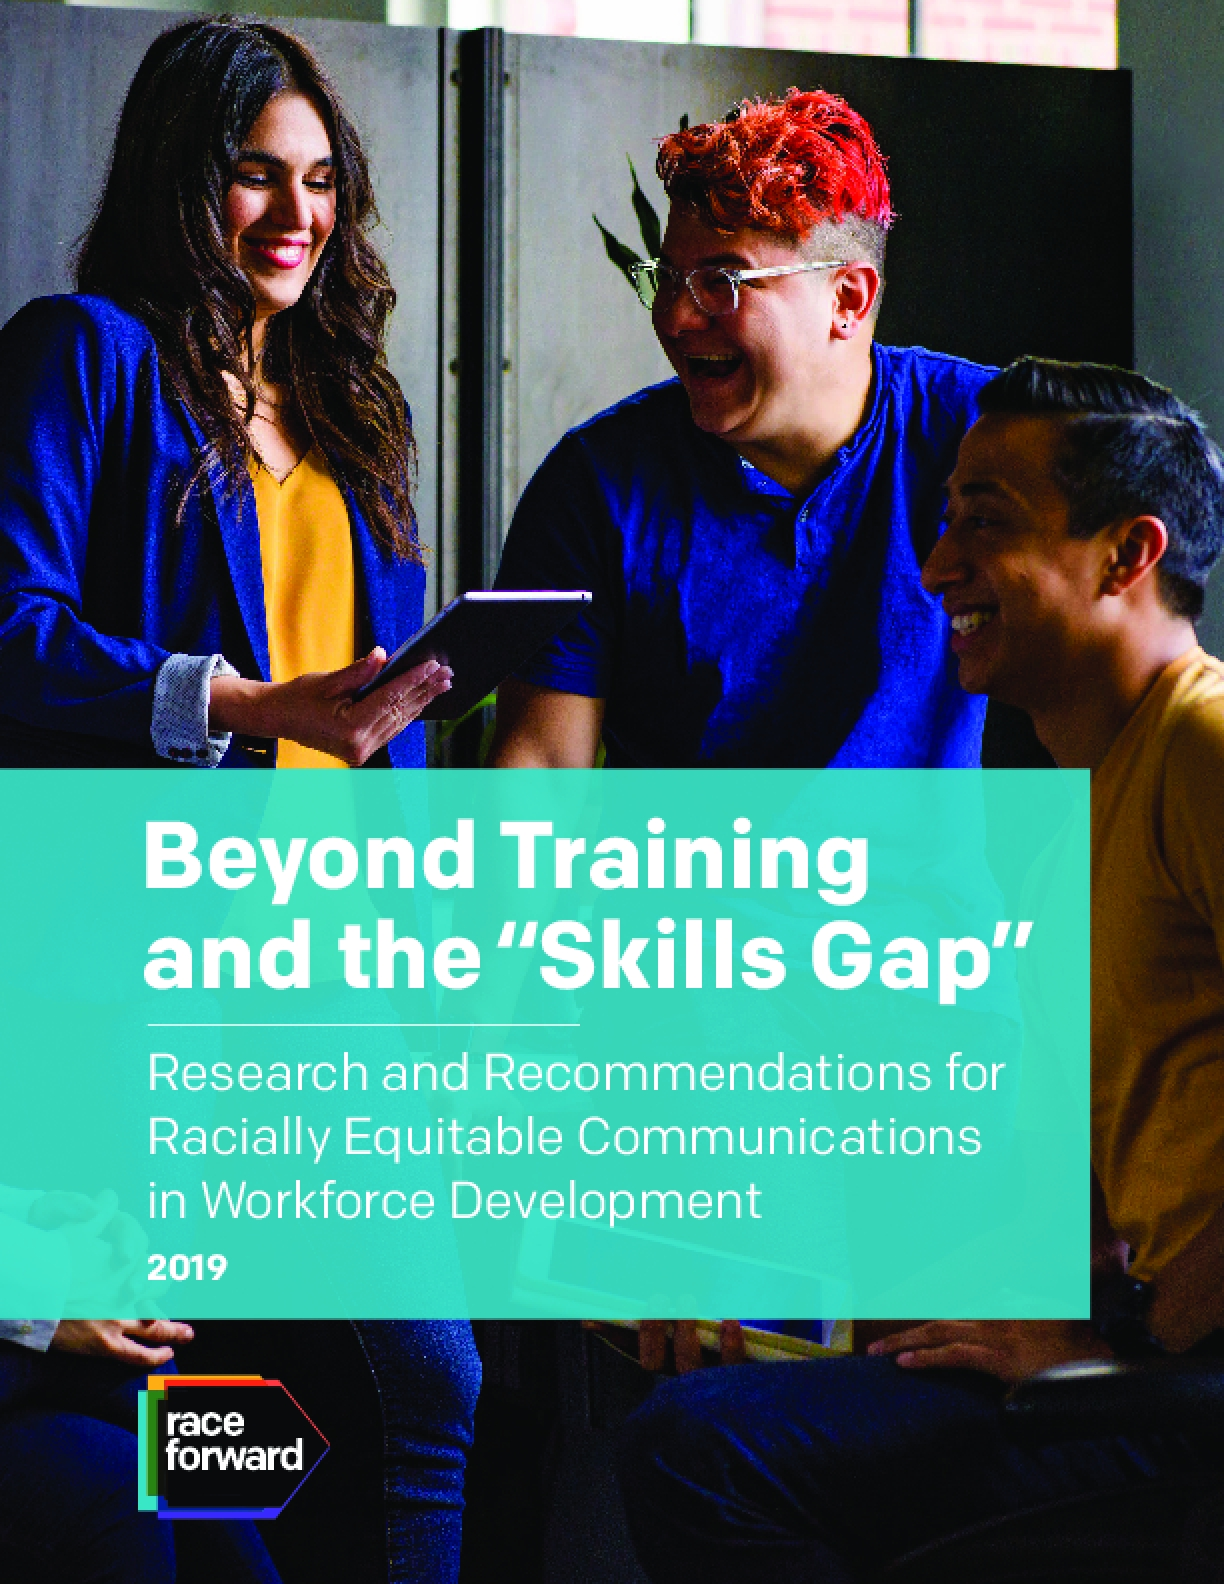 Beyond Training and the Skills Gap: Research and Recommendations for Racially Equitable Communications in Workforce Development